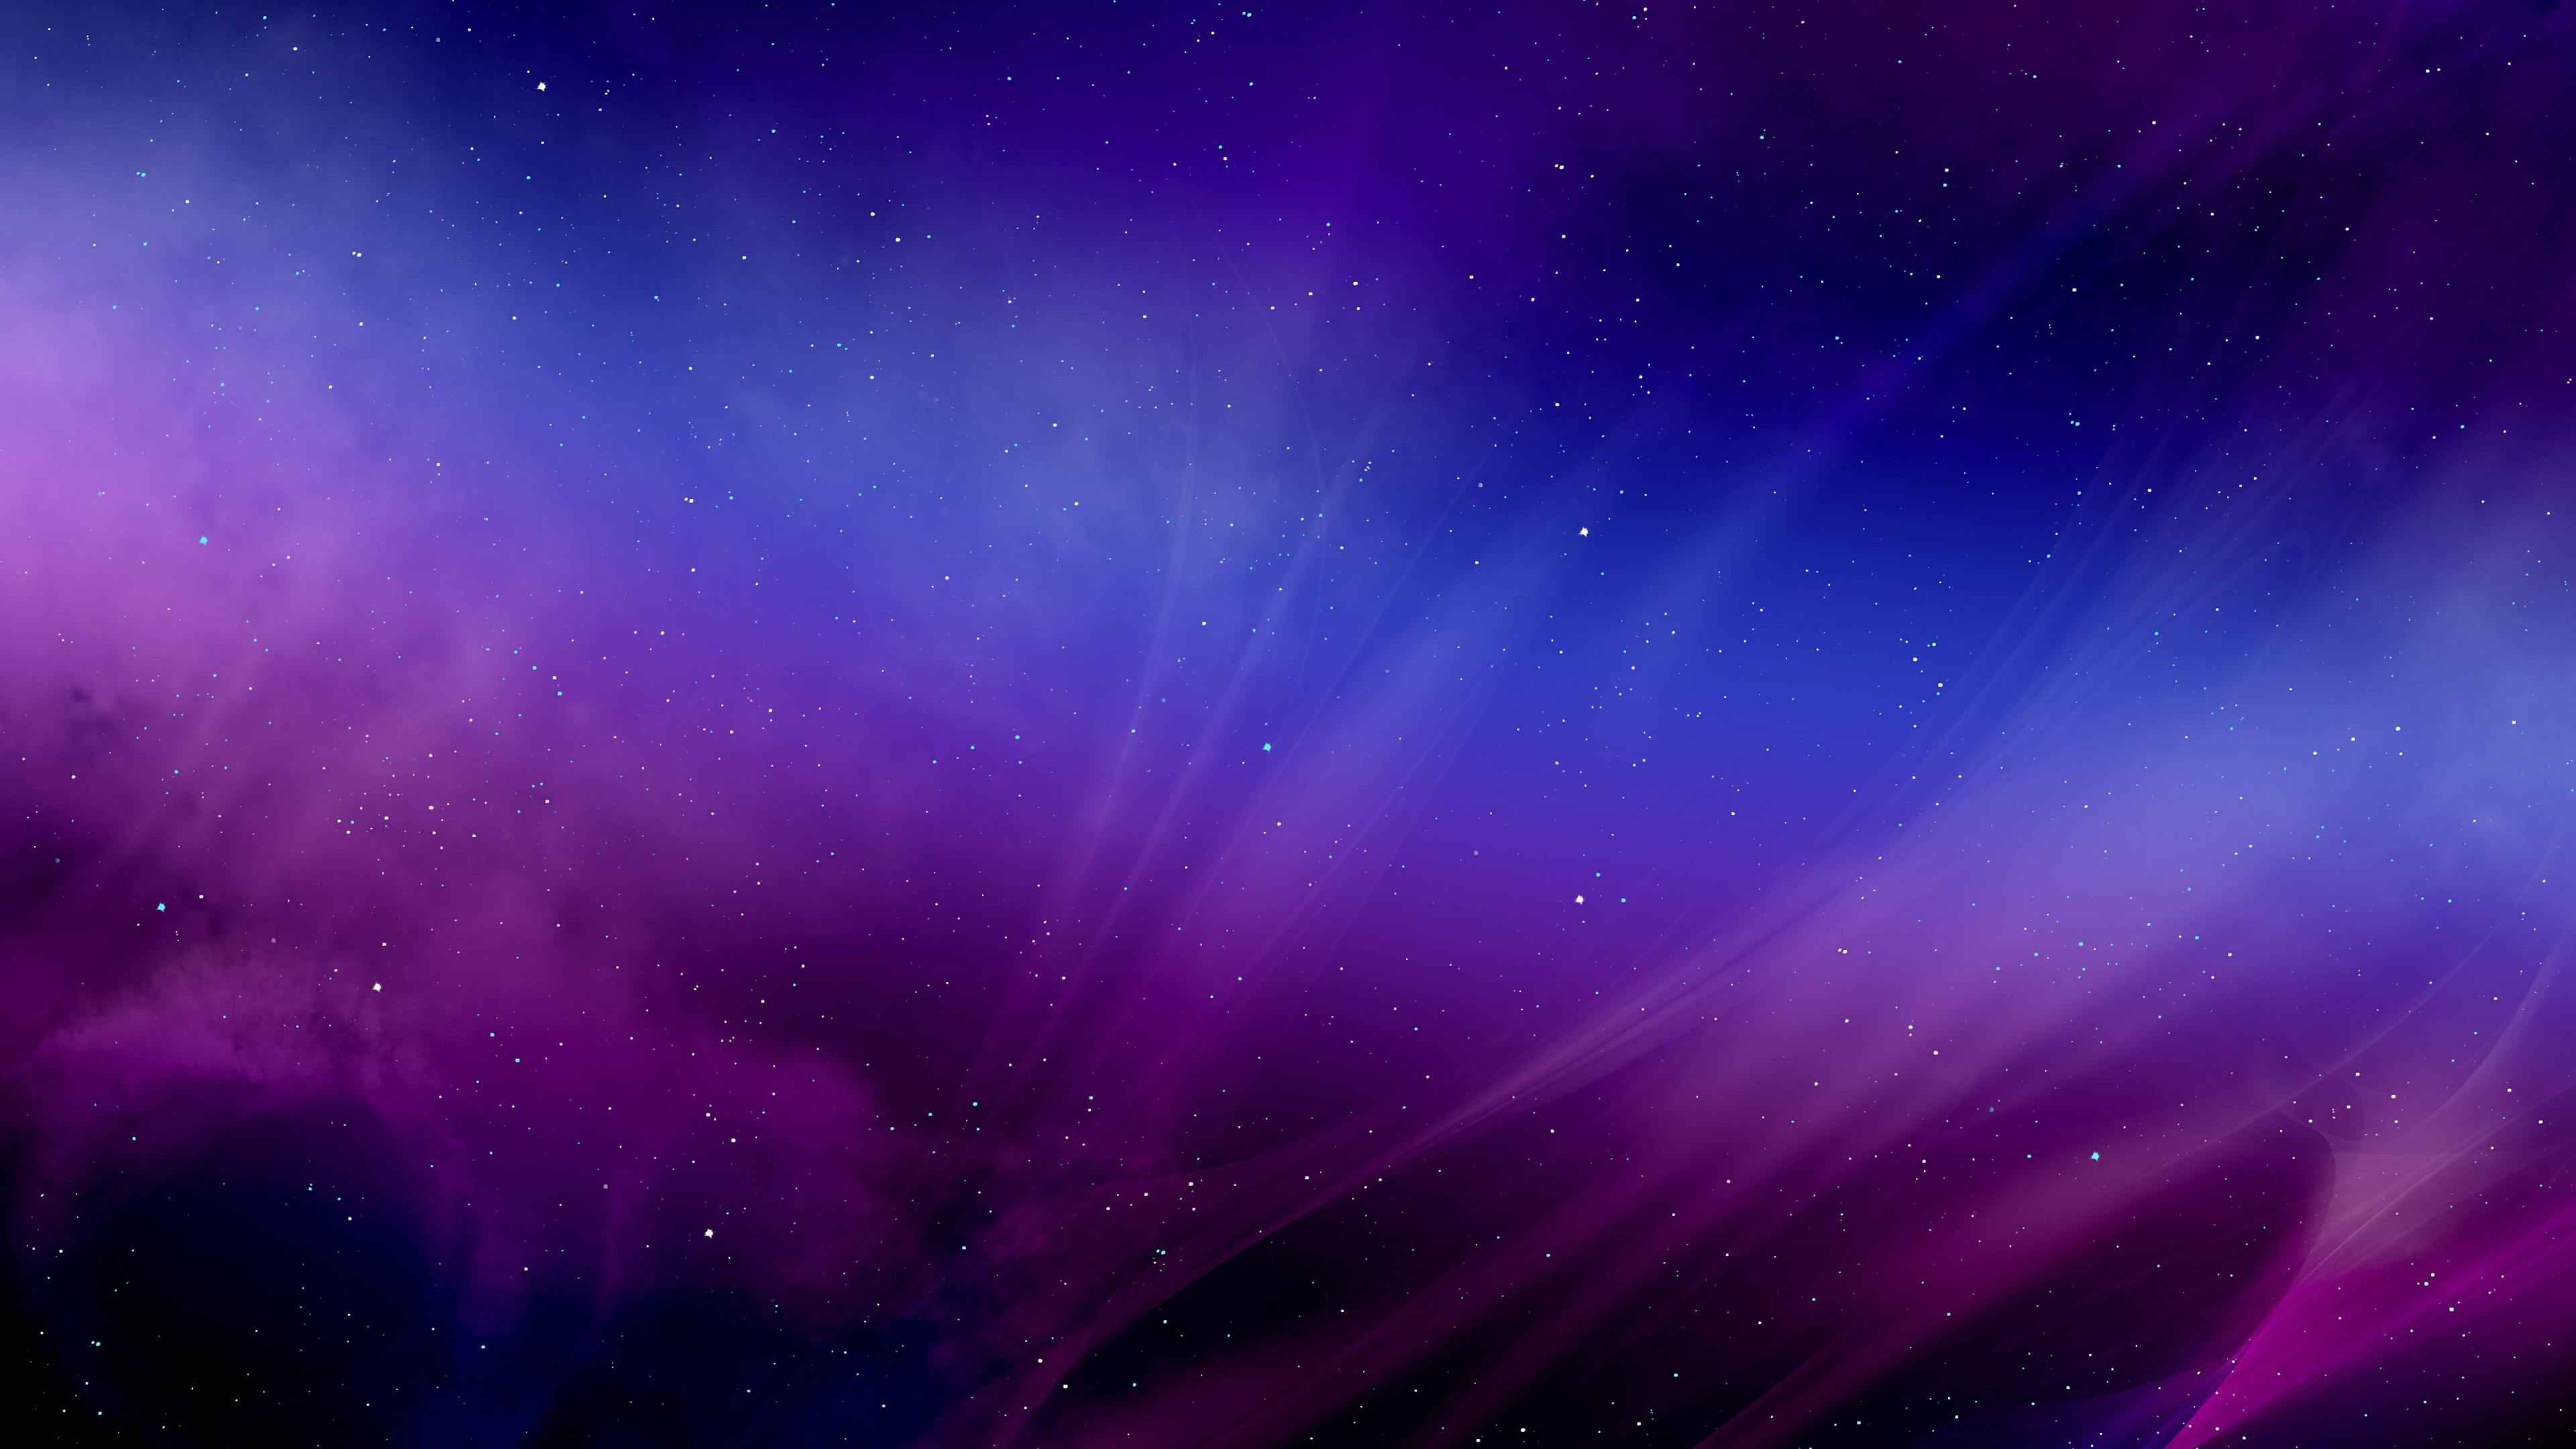 Purple And Blue Space 4k Ultra Hd Wallpaper Background Image 3840x2160 Id 1002539 Wallpaper Abyss